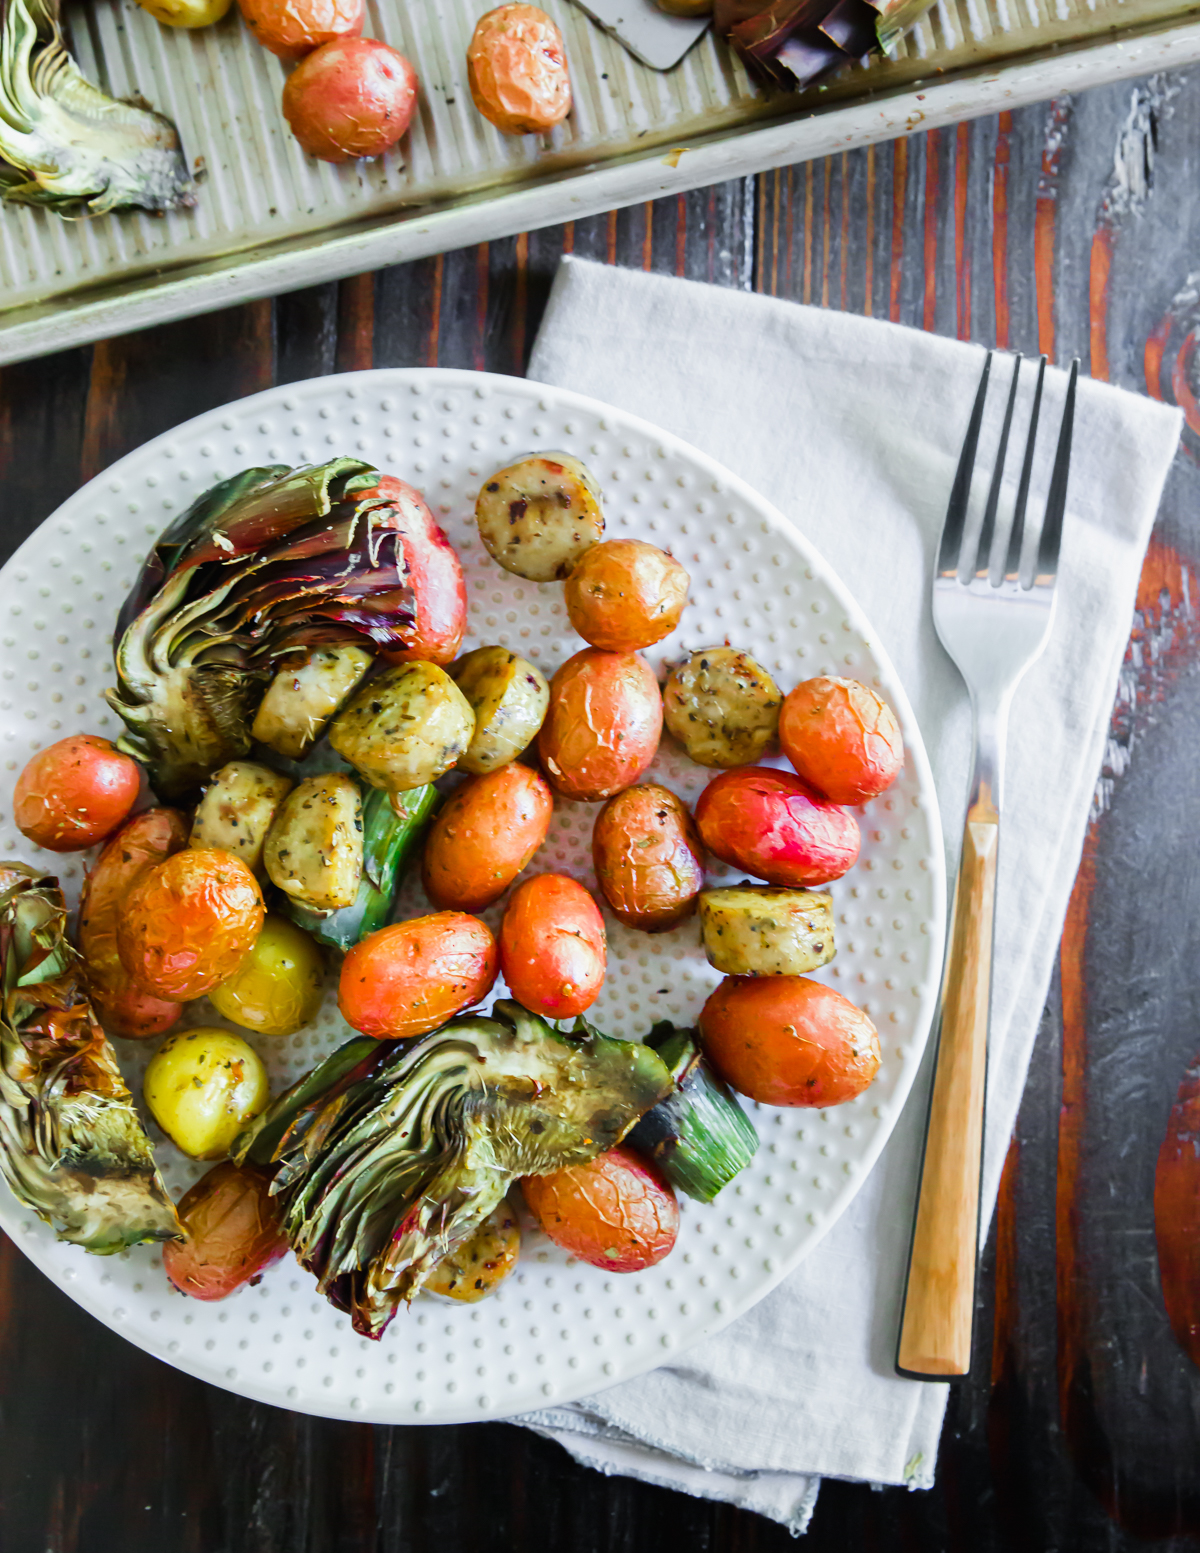 This simple dinner recipe combines sausage and vegetables on a sheet pan for an easy complete meal all in one!